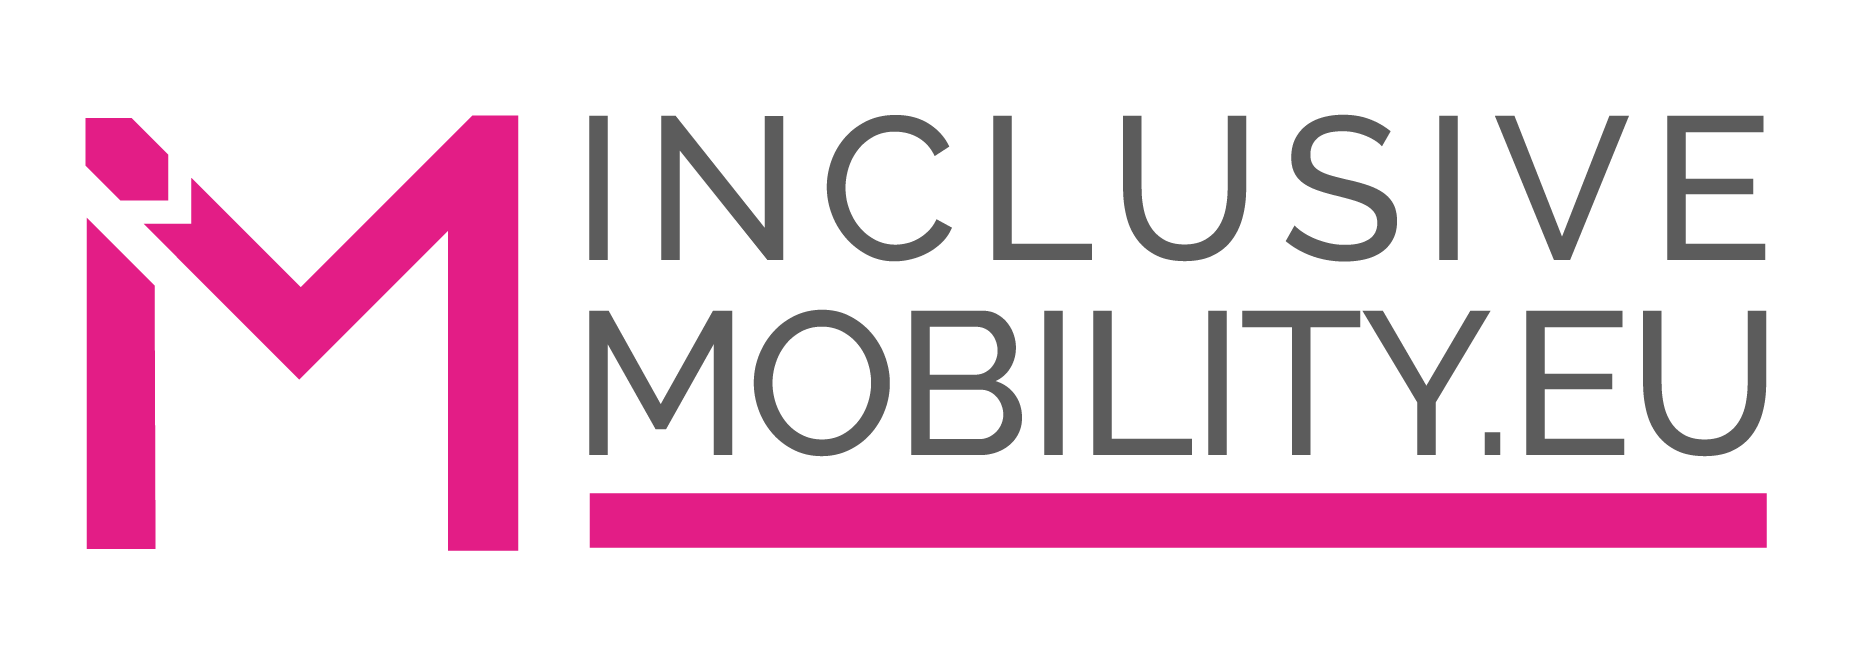 Logo of Inclusive Mobility